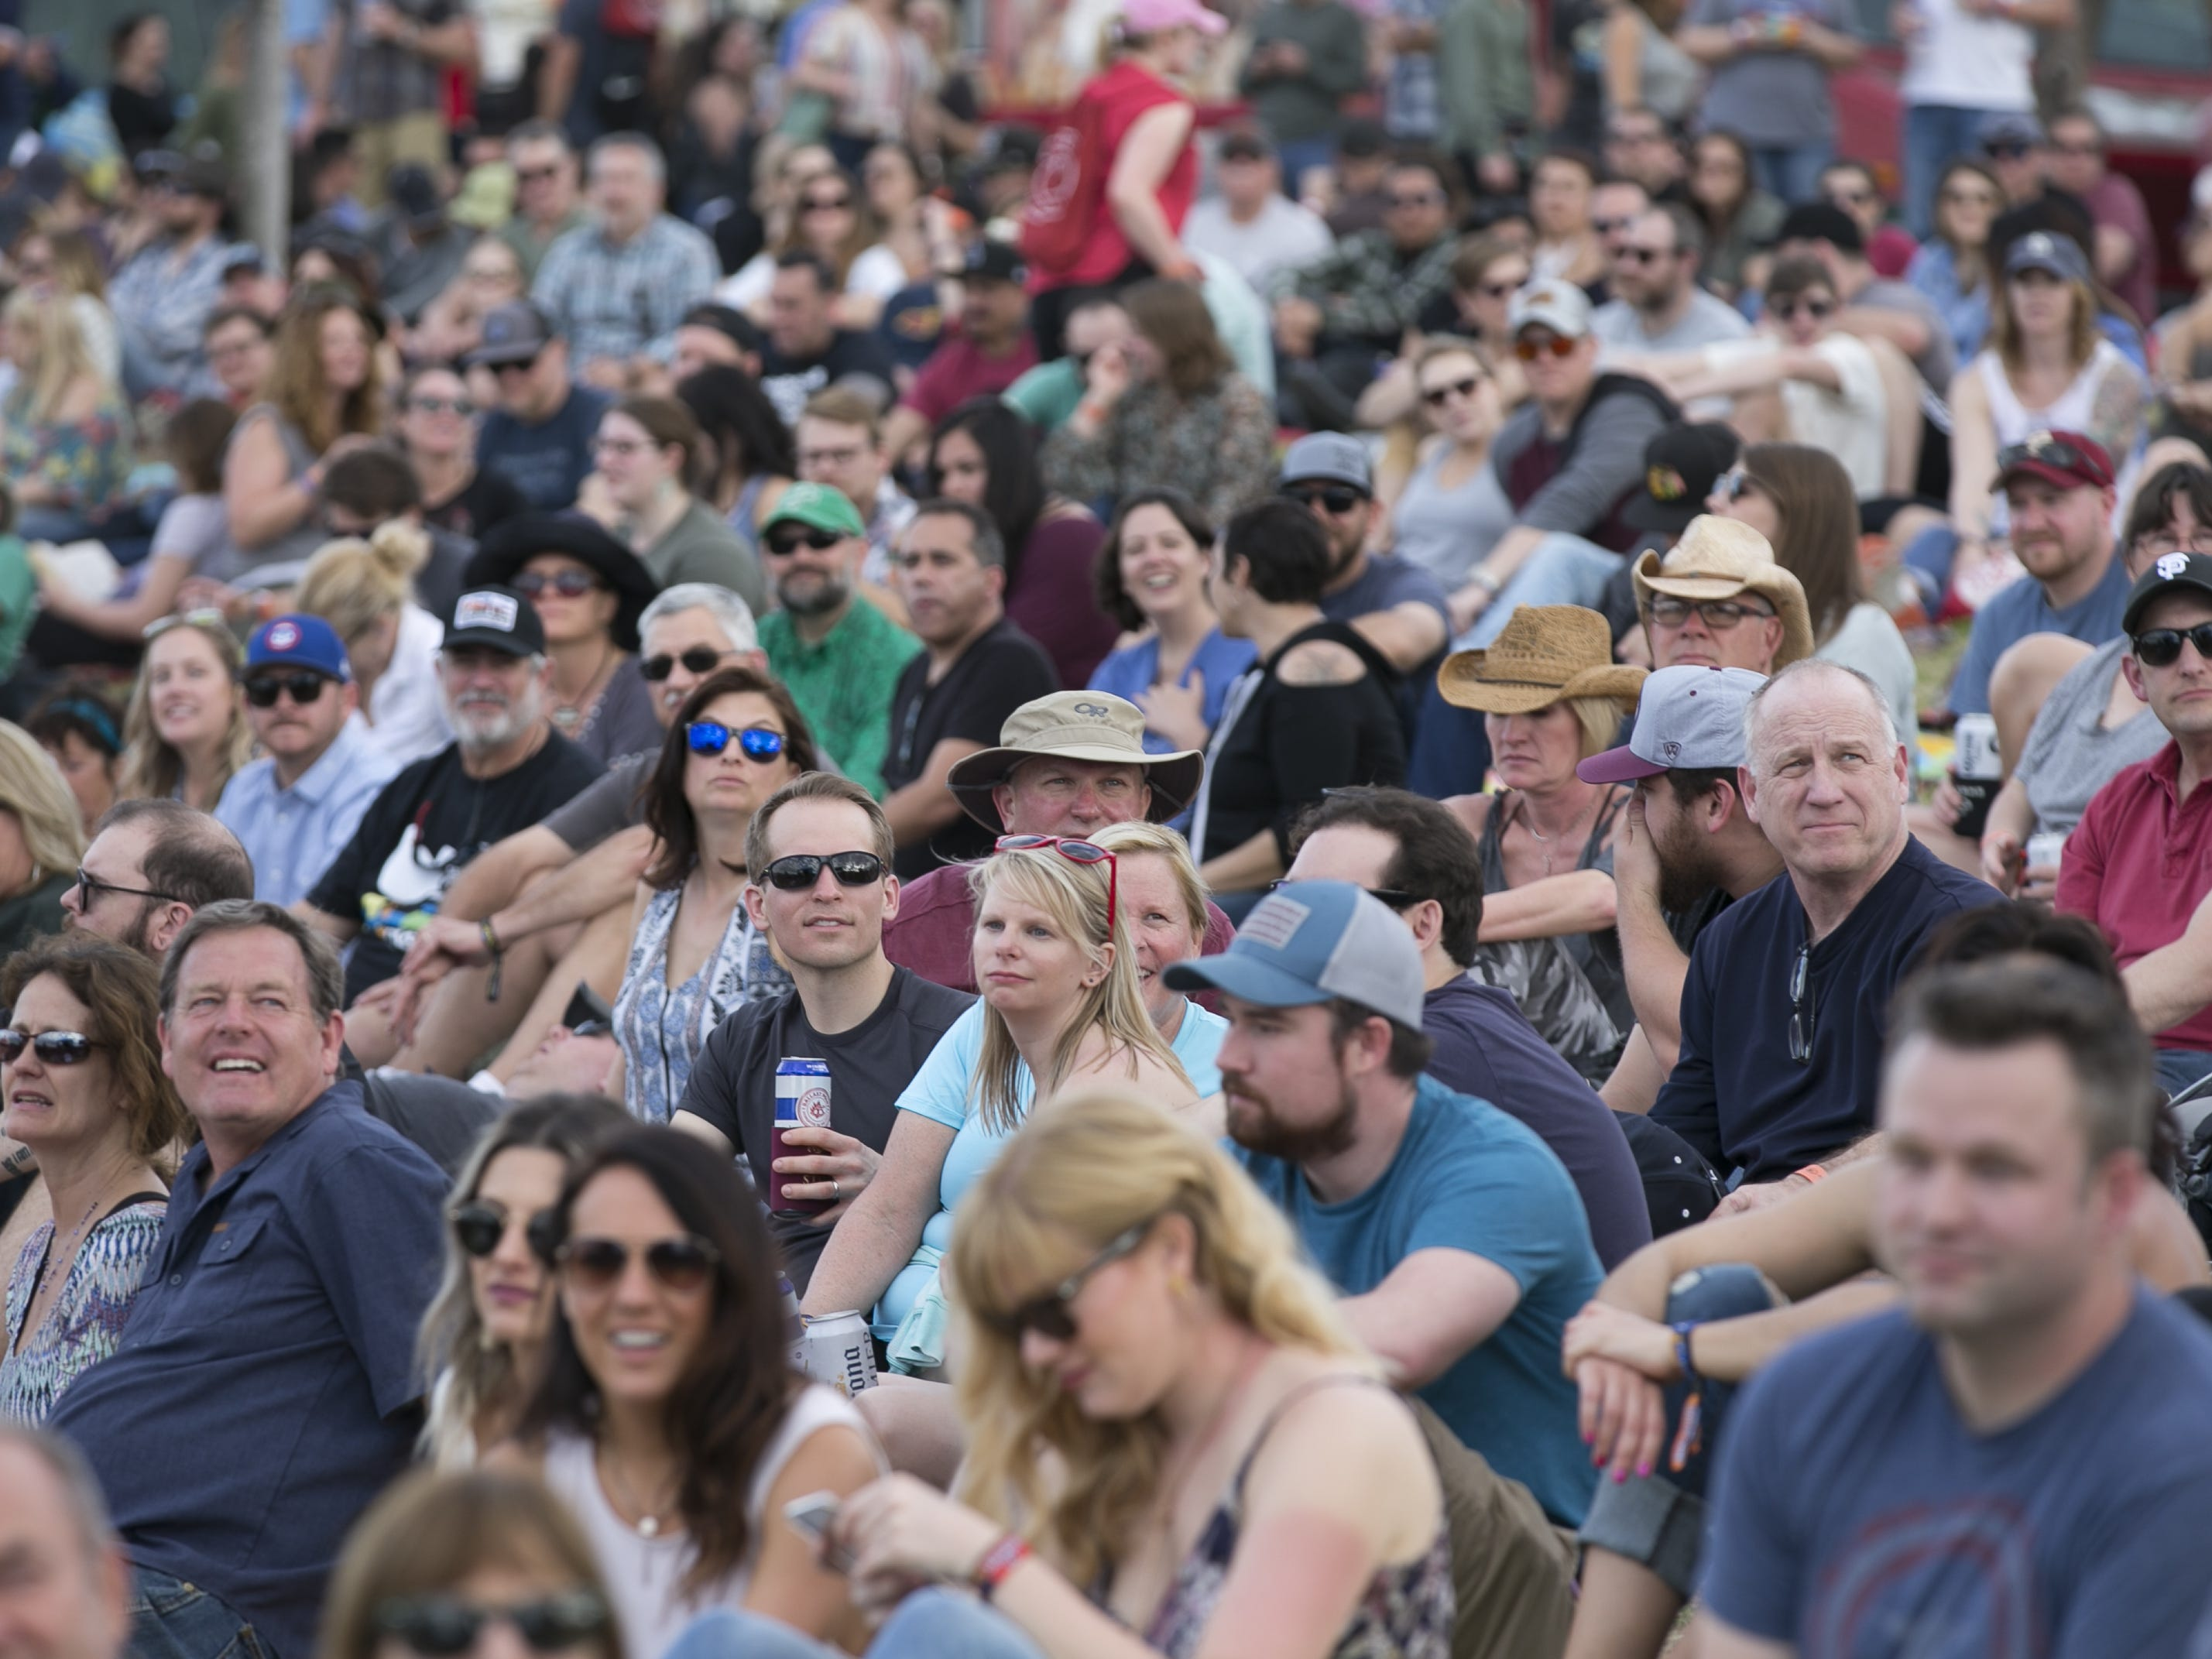 Fans watch Guster perform at the Innings Festival at Tempe Beach Park in Ariz. on Saturday, March 2, 2019.